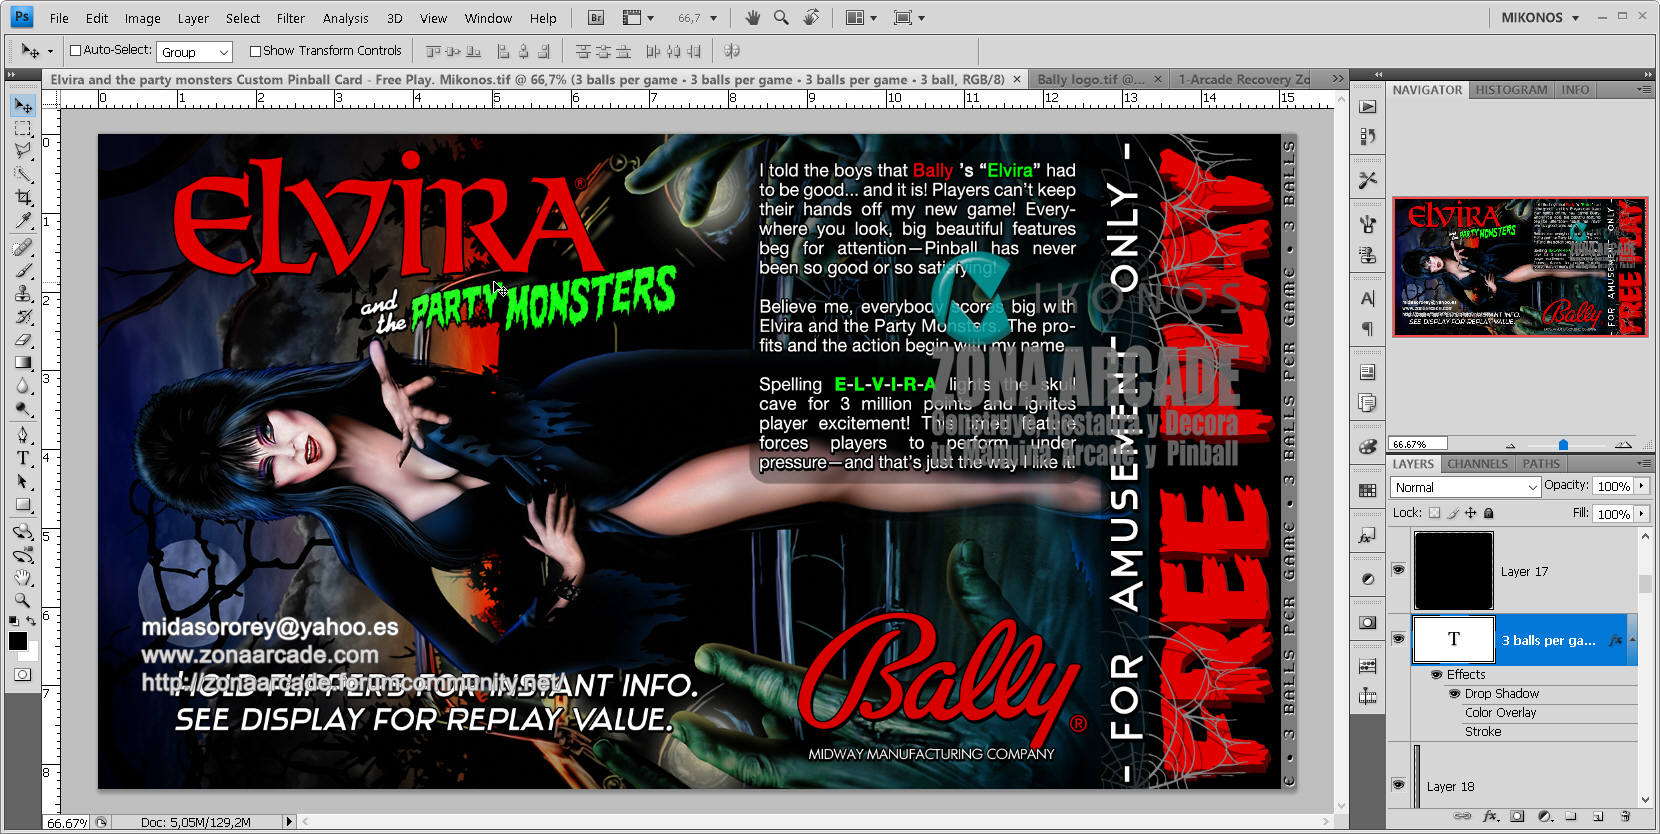 Elvira%20And%20The%20Party%20Monsters%20Pinball%20Card%20Customized%20-%20Free%20Play.%20Mikonos1.jpg